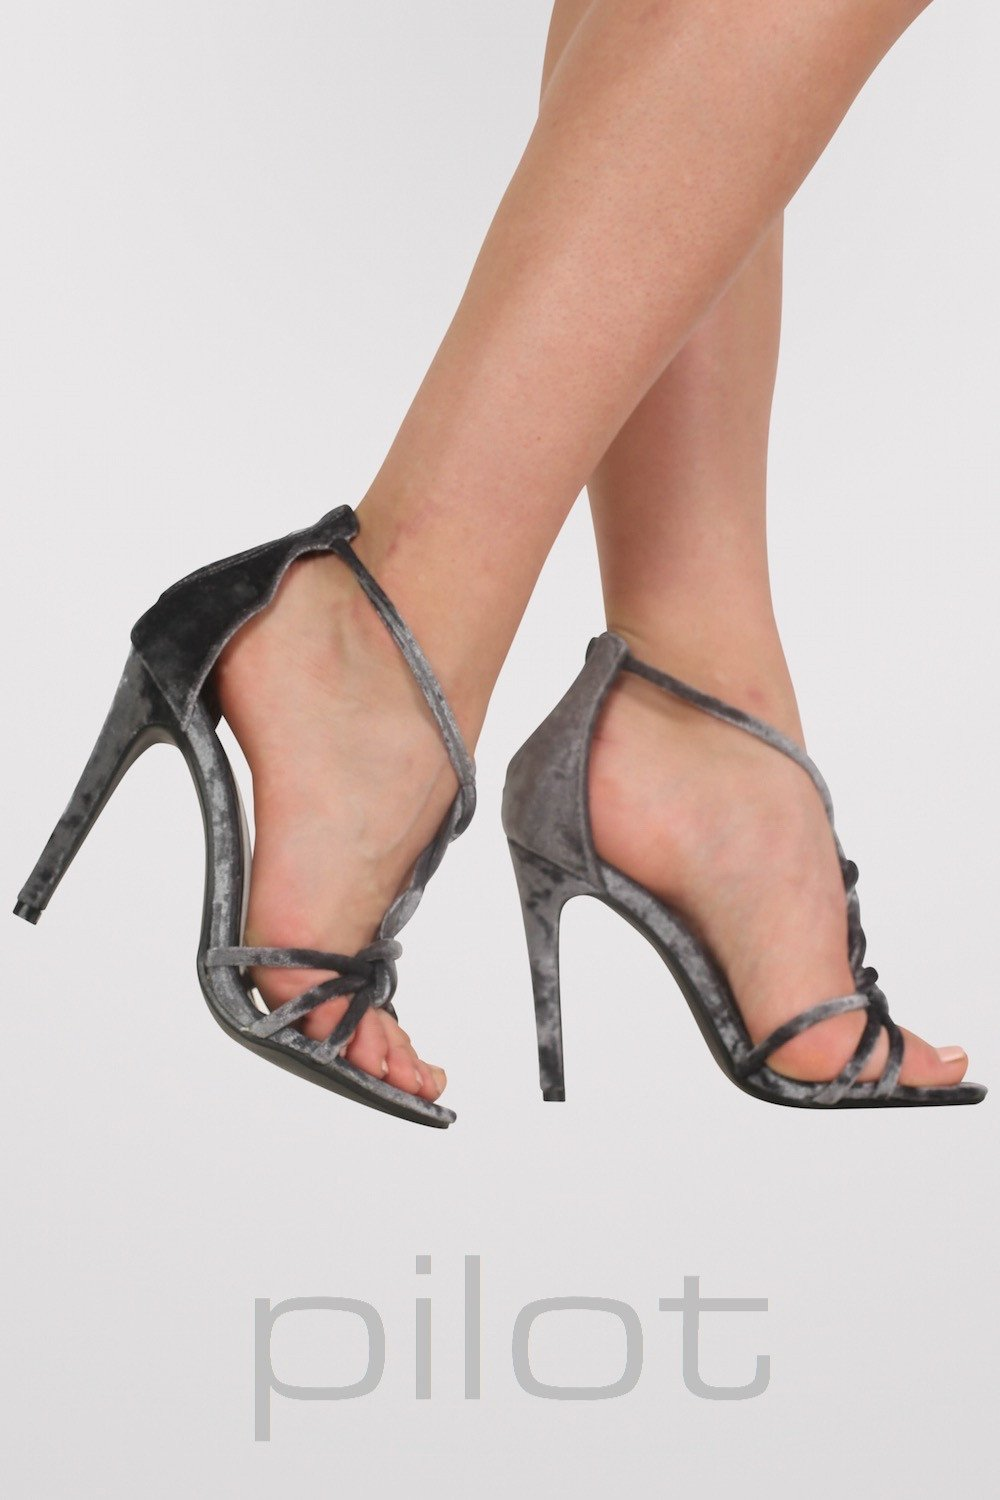 Velvet Twist Strap Slinky High Heel Sandals in Grey MODEL SIDE